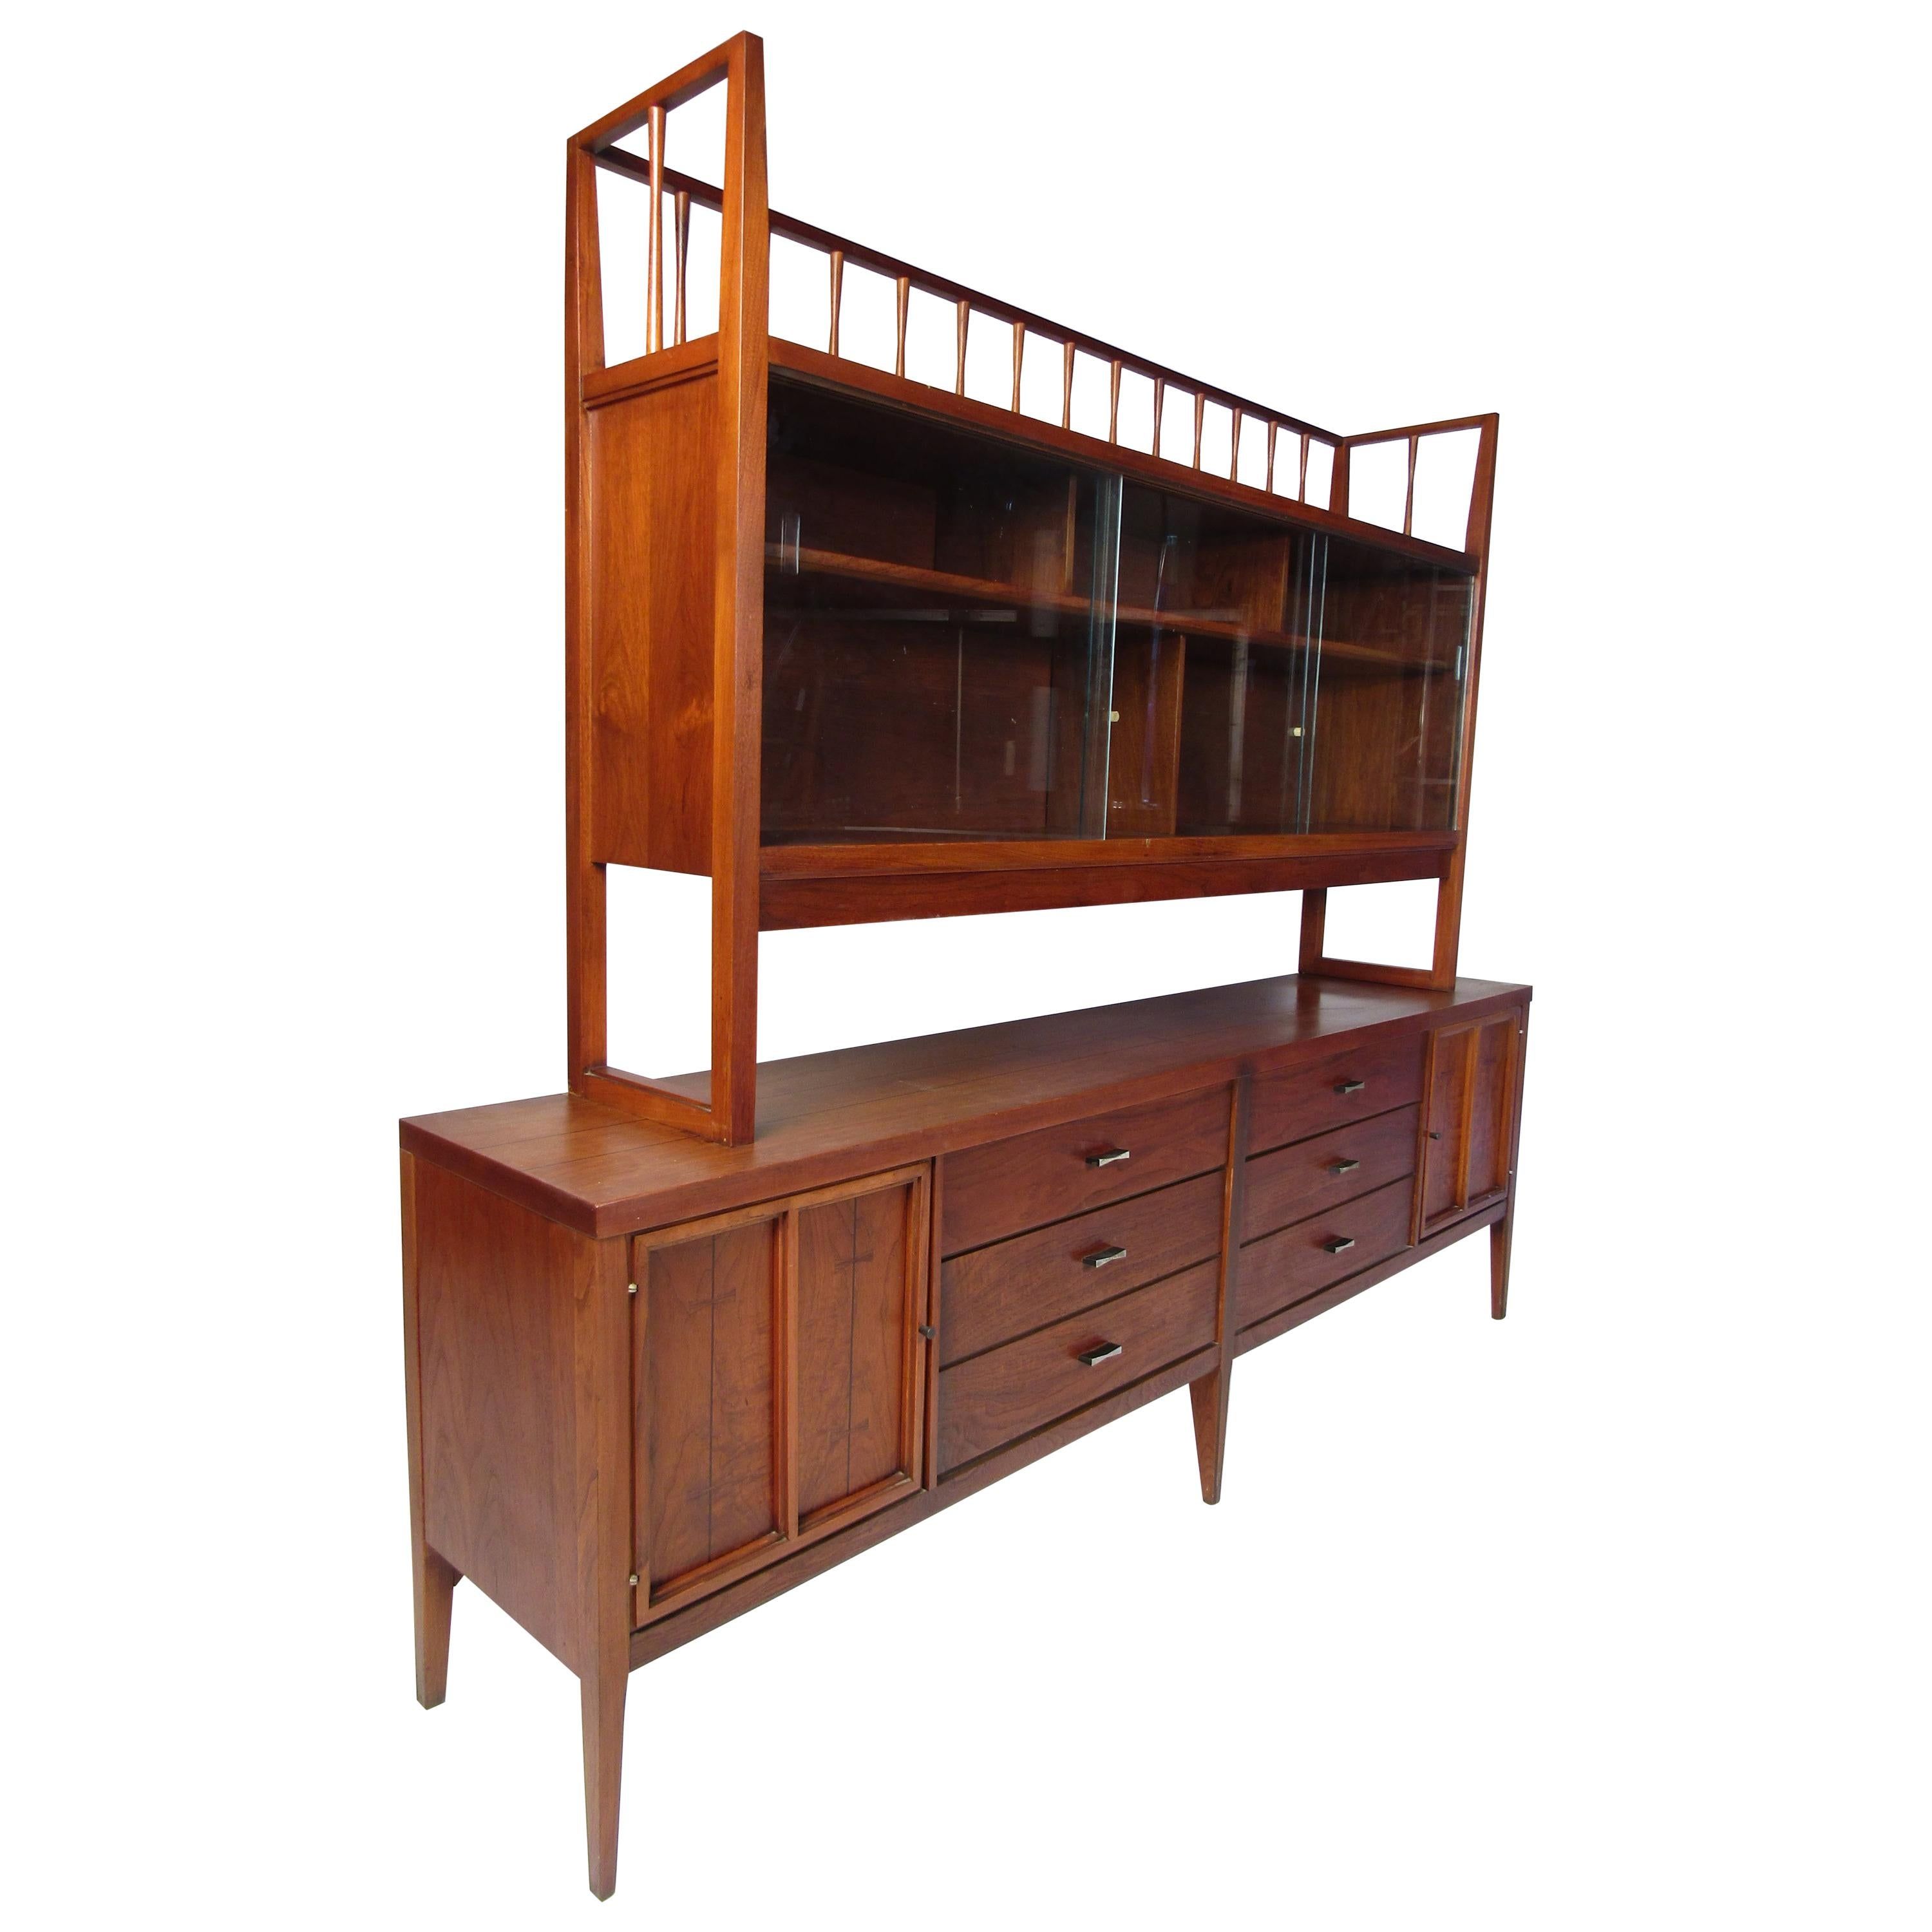 Mid-Century Modern Credenza with Topper by Lane